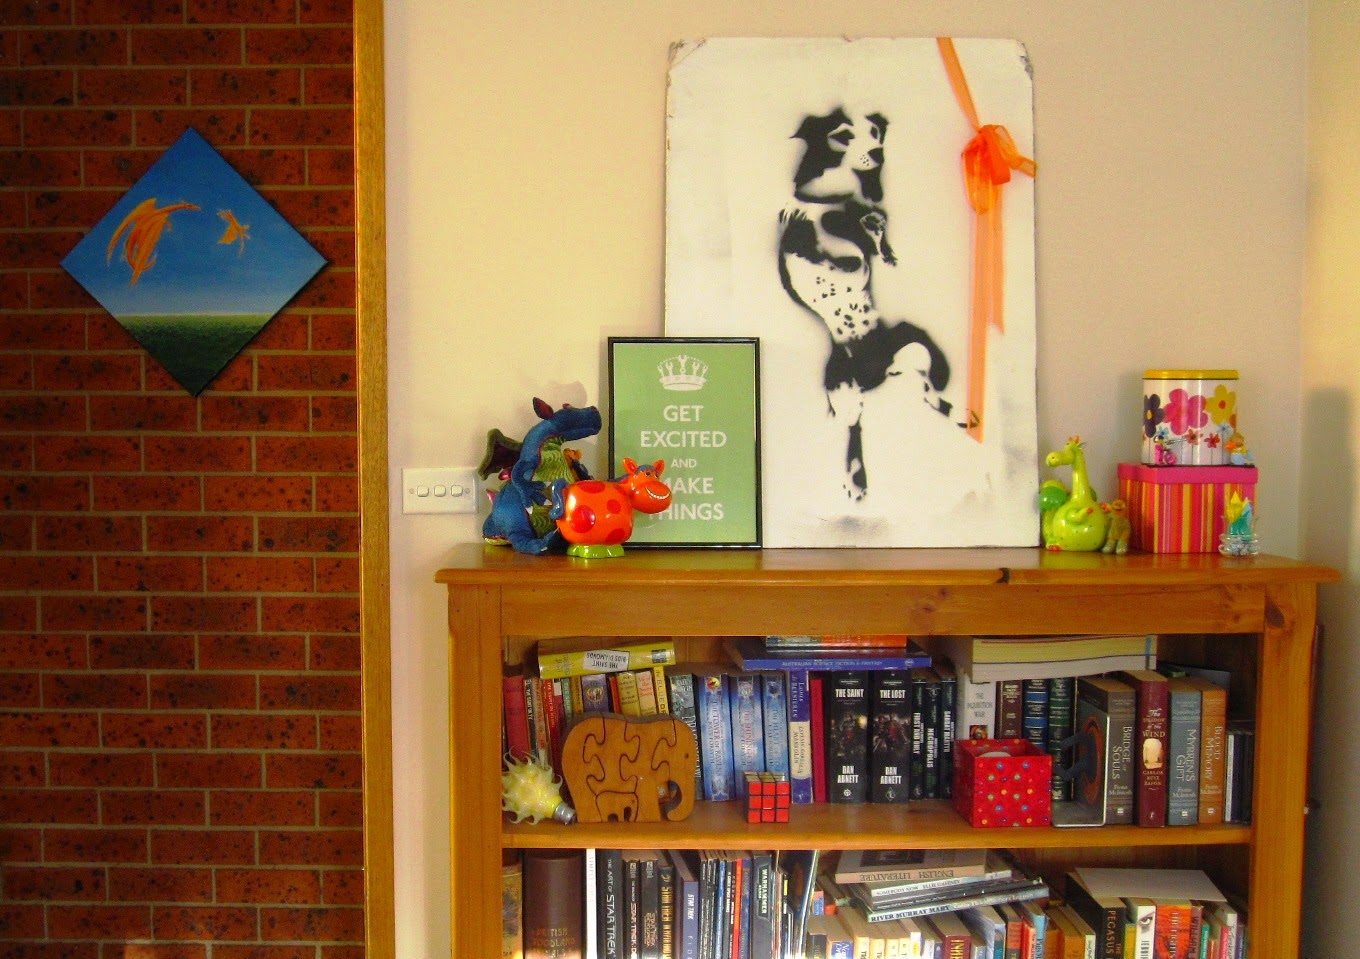 Wooden bookcase in front of a cream wall. On top of the bookcase is a selection of brightly coloured ornaments and a black and white piece of dog street art. There is a brick wall to the left with a painting of orange dragons flying in a blue sky.